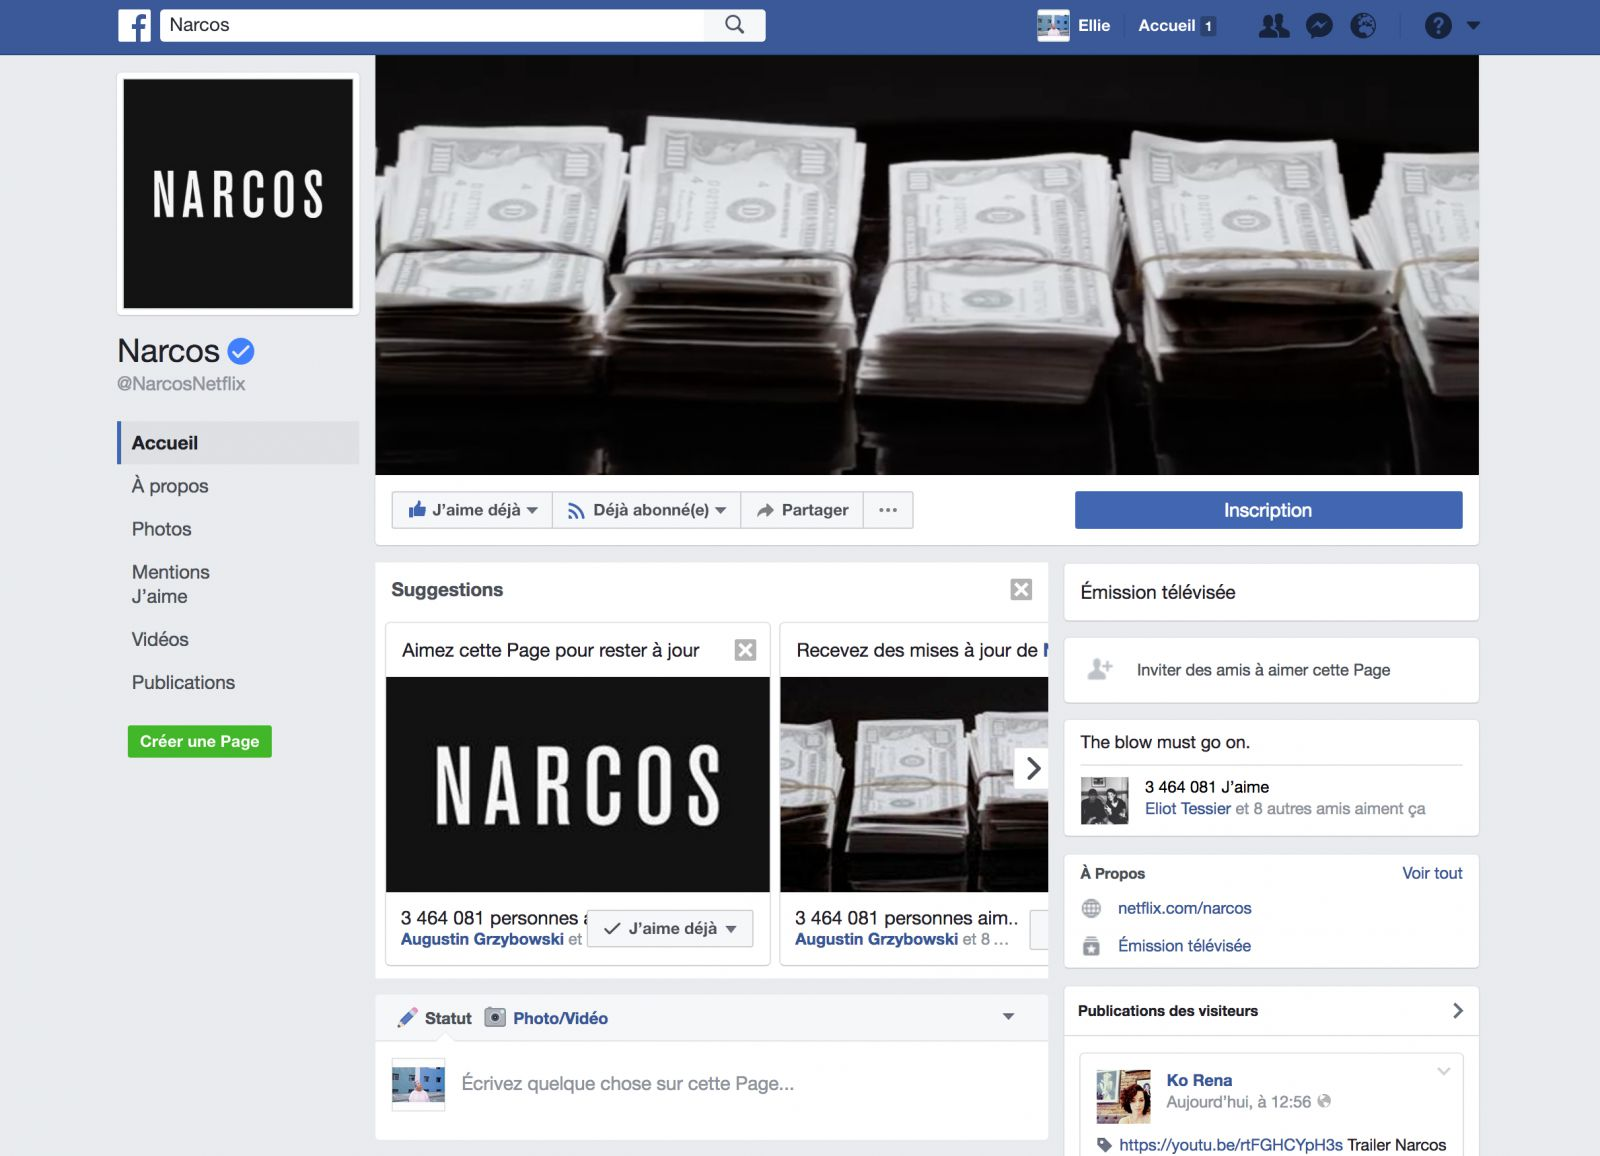 Photo © Facebook, Narcos homepage